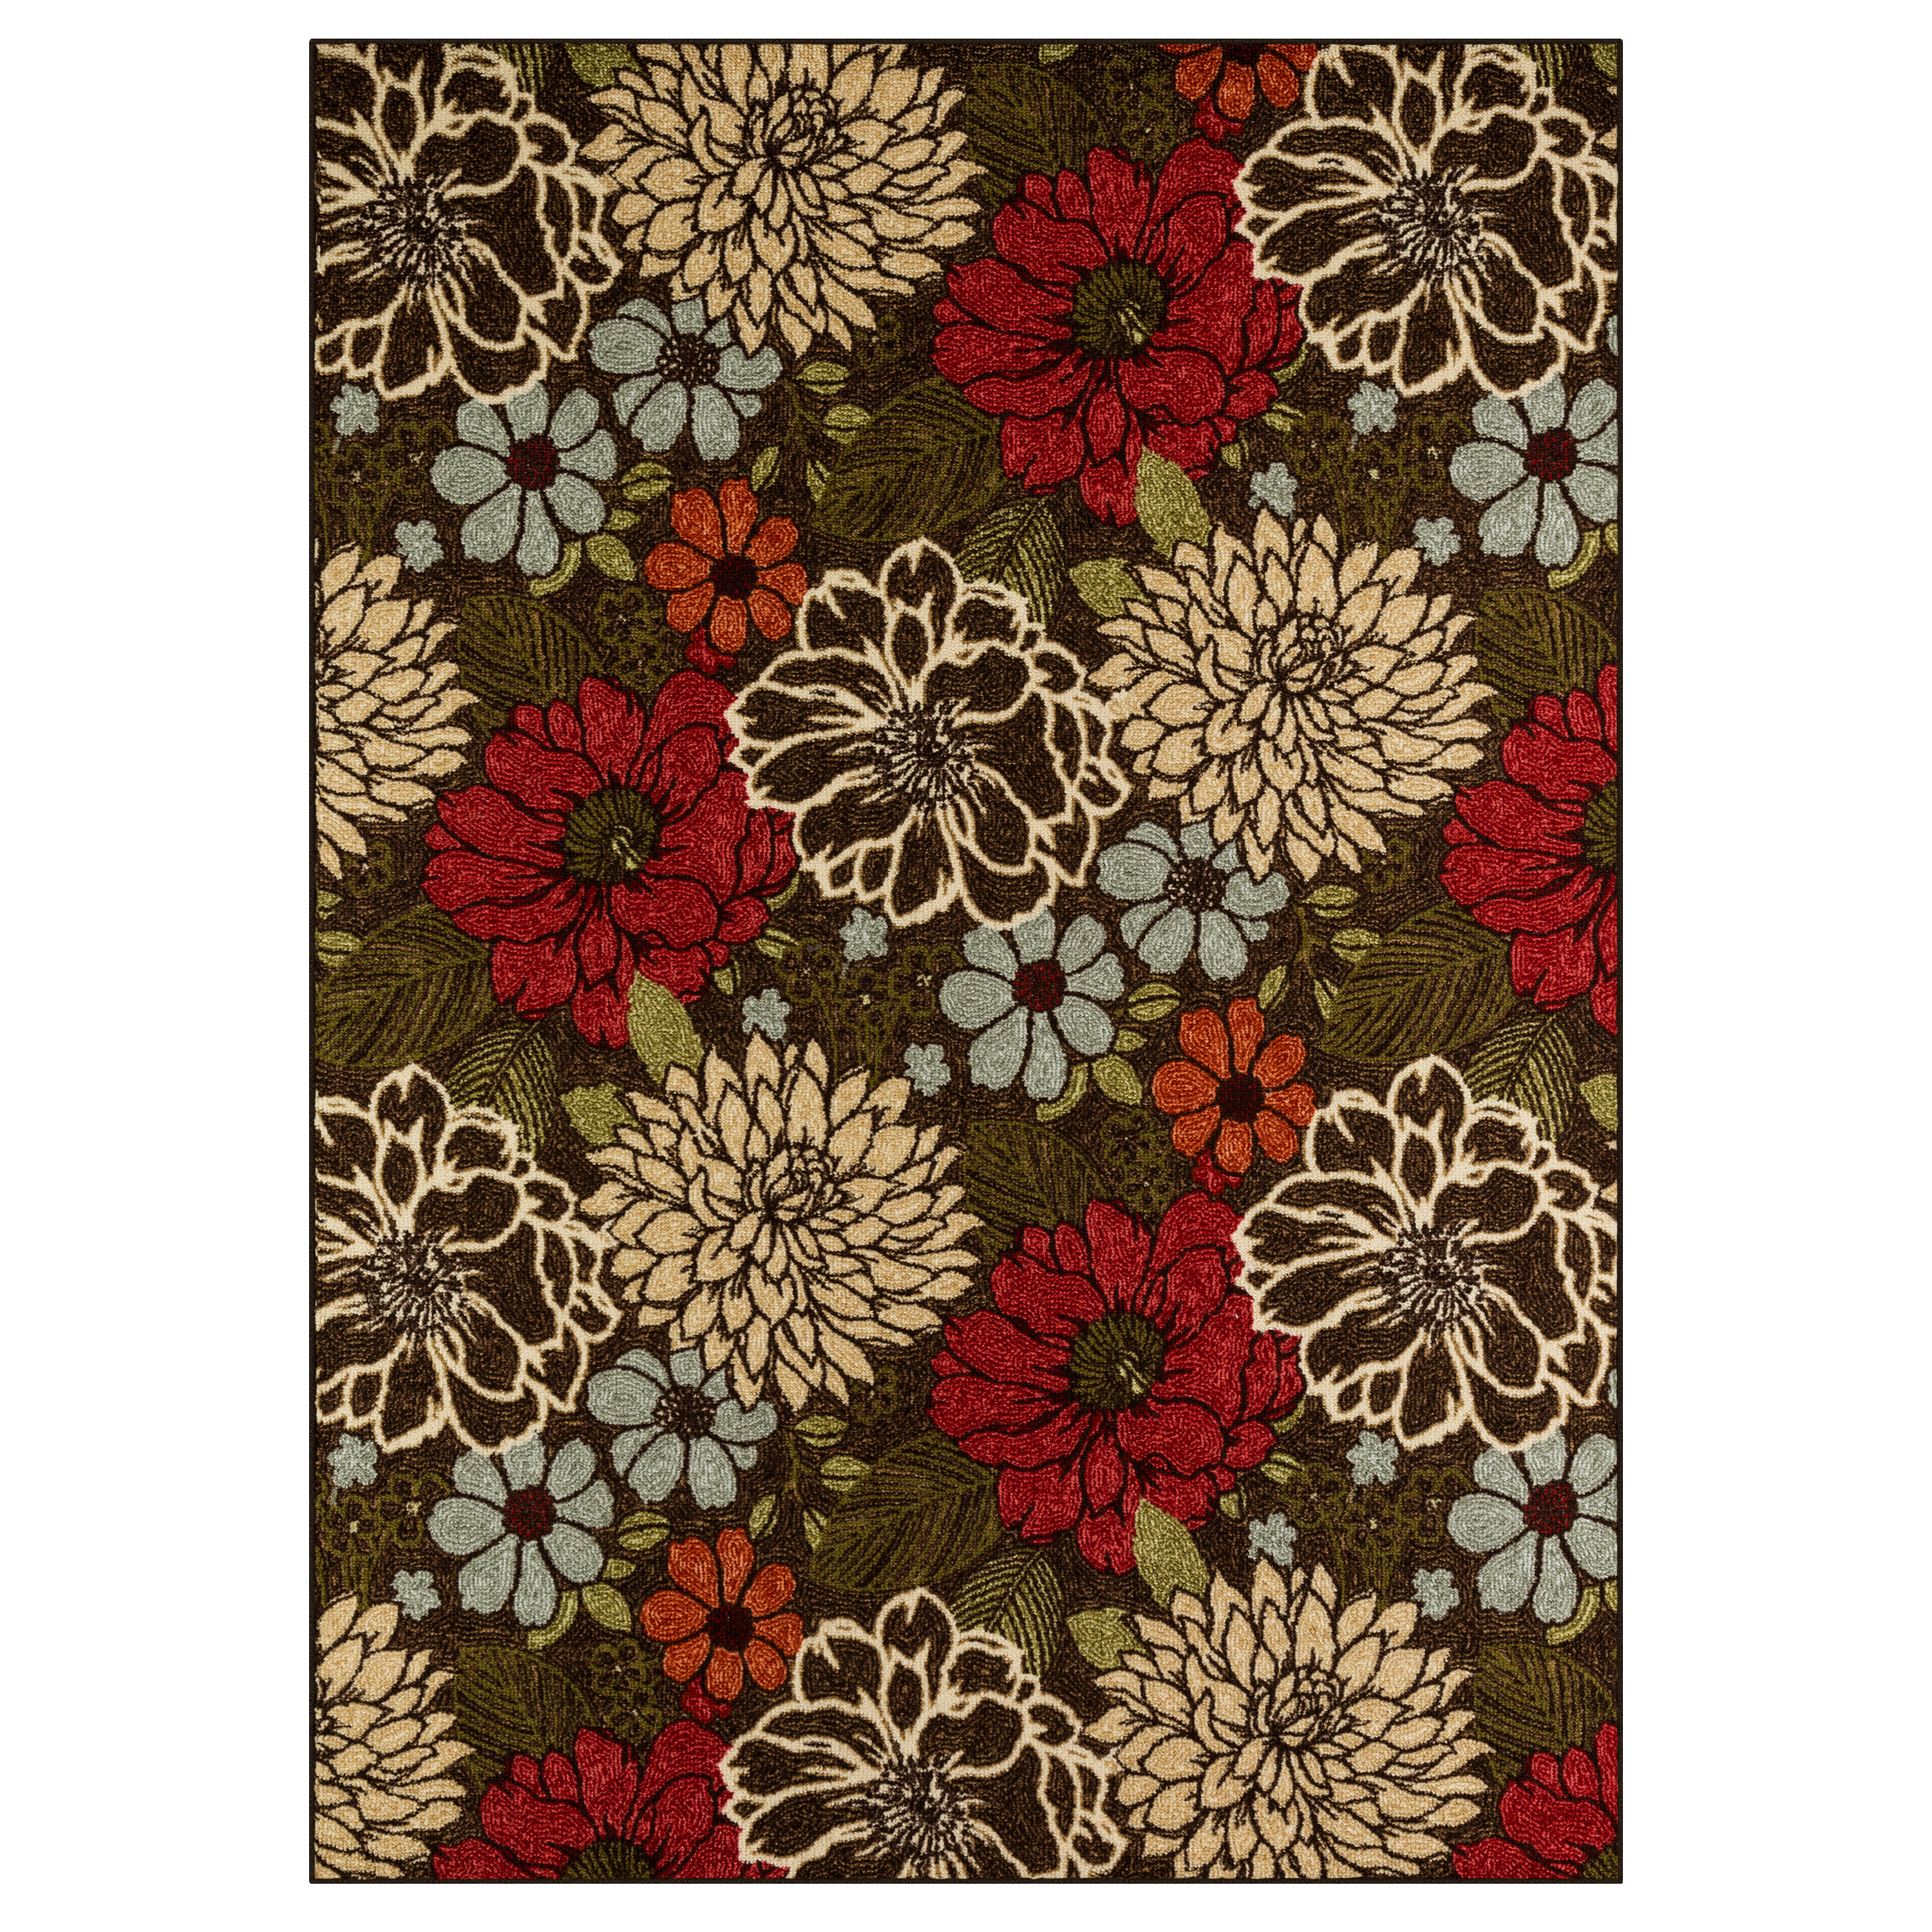 Better Homes & Gardens Sorbet Faux Hook Floral Area Rug or Runner